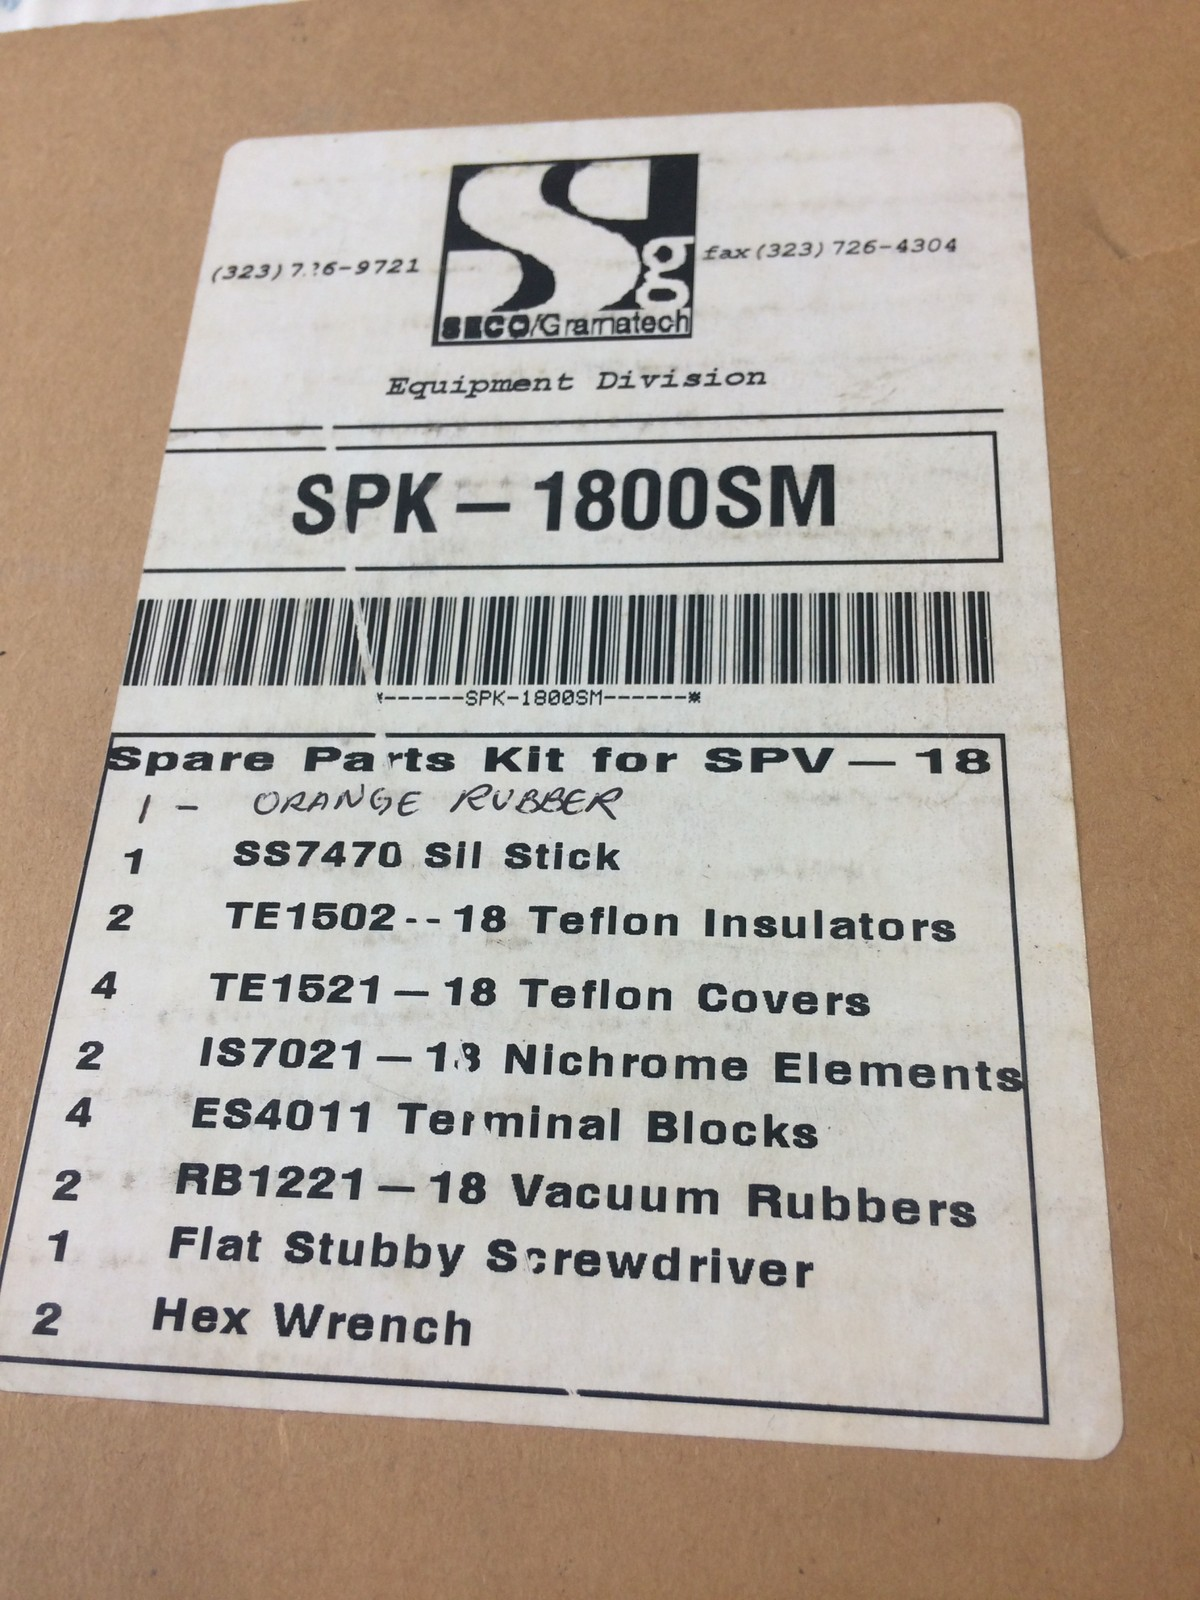 SECO/GRAMATECH SPK-1800SM SPARE PARTS KIT FOR SPV-18